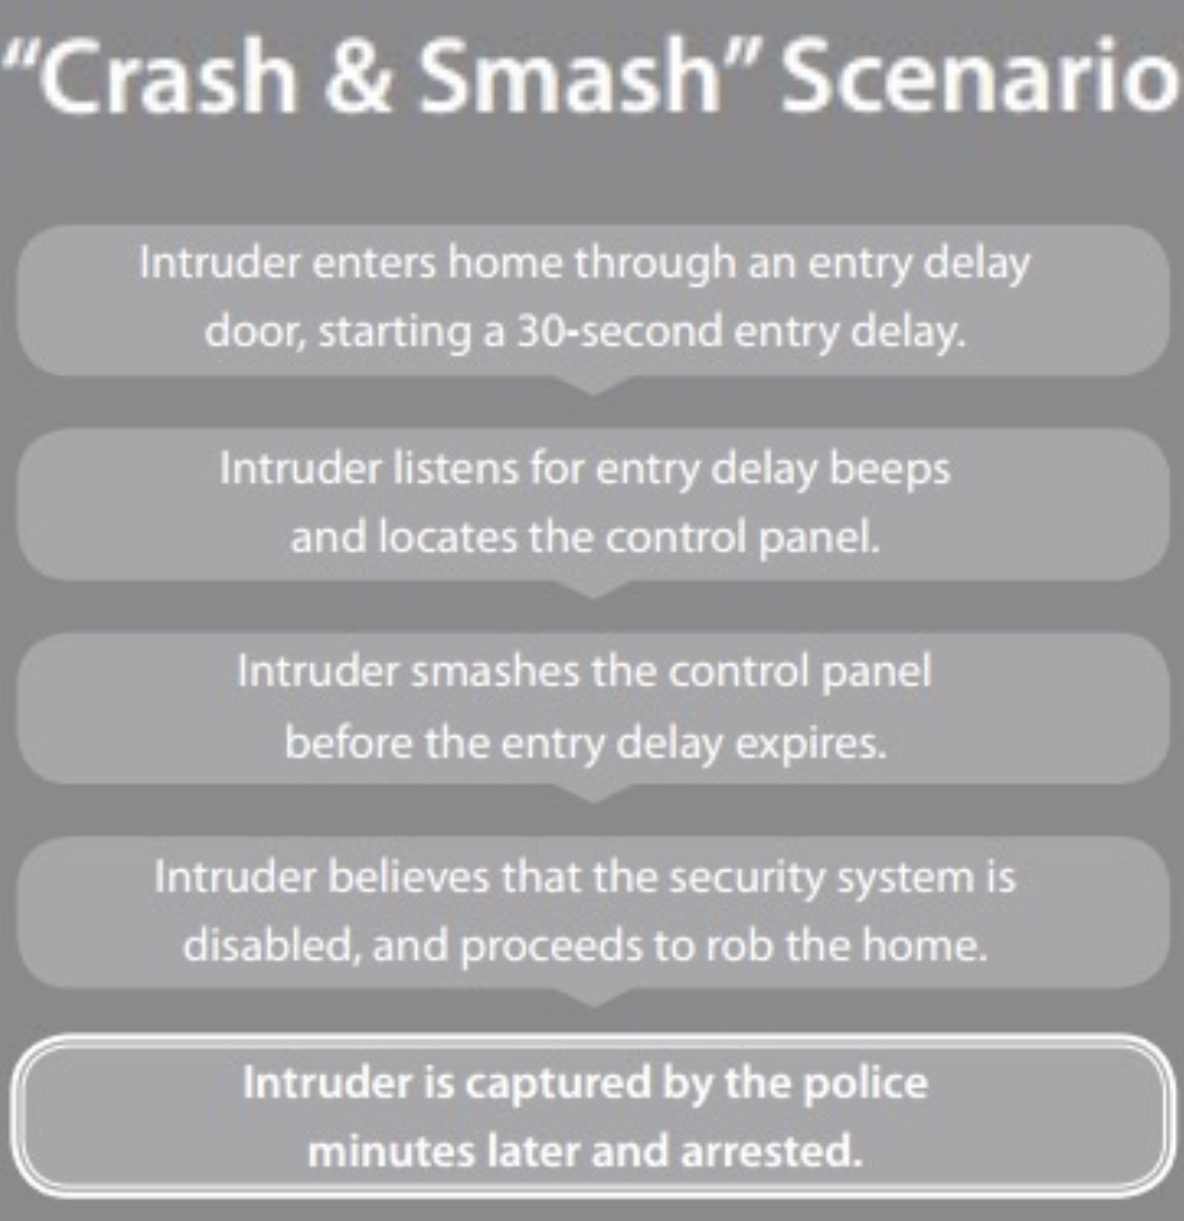 Crash and Smash Technology